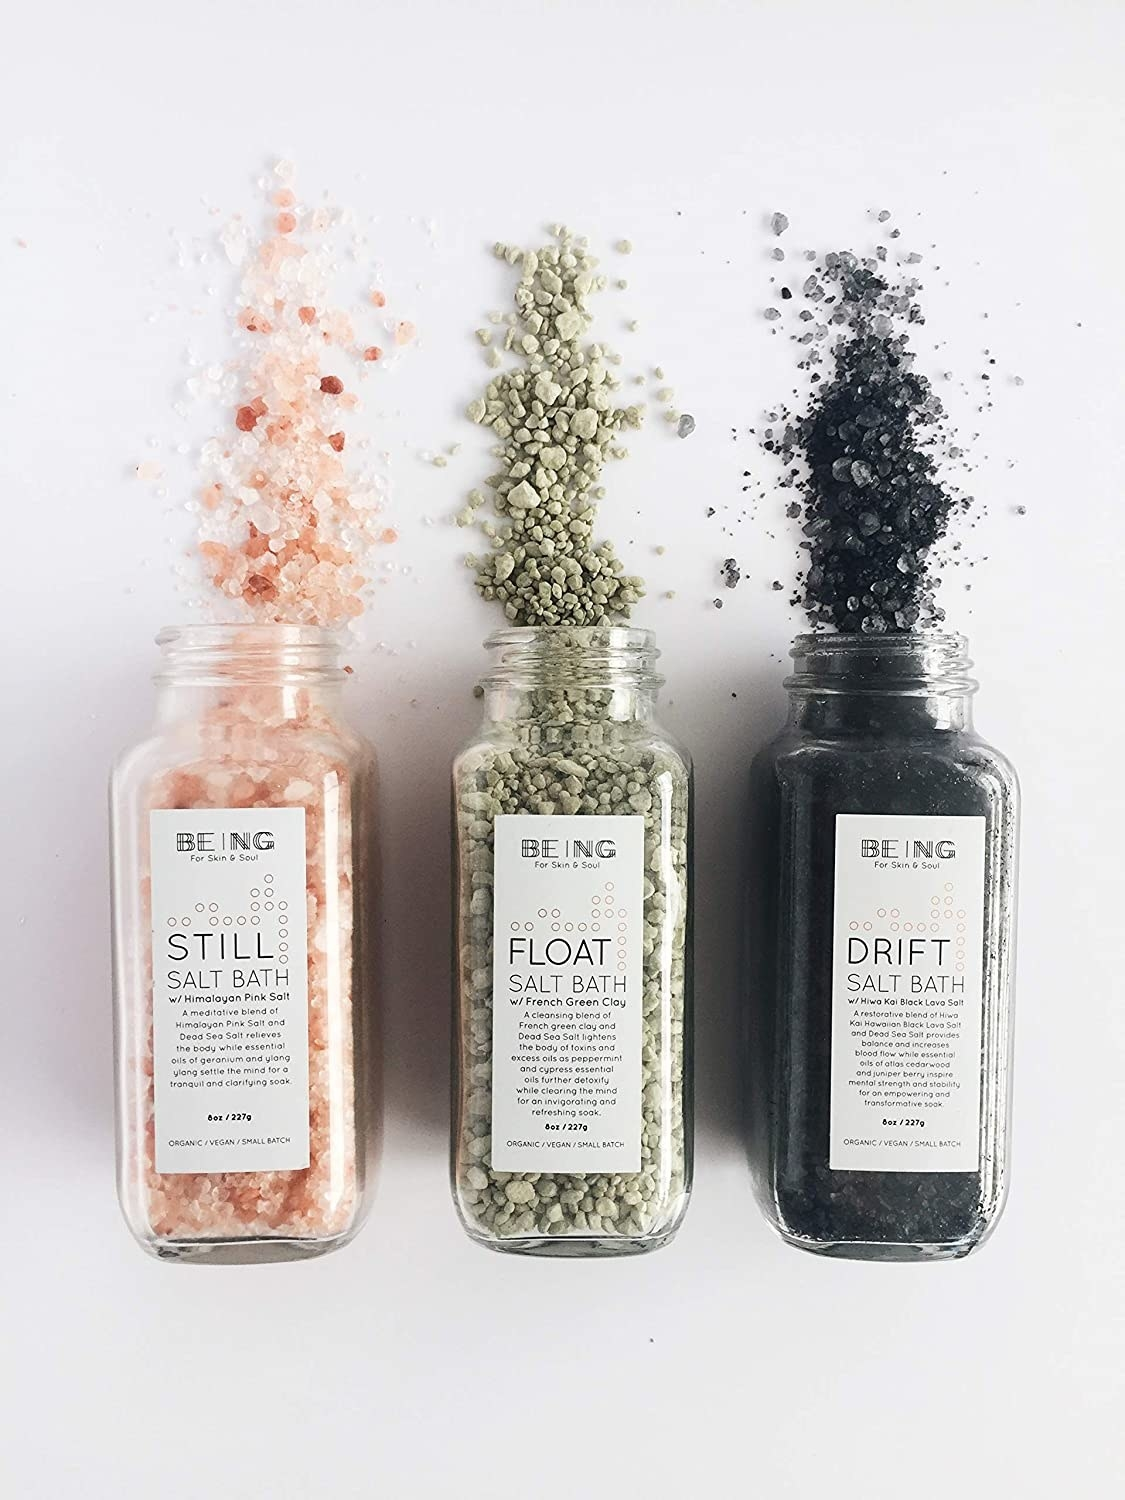 Three different bath salts in glass jars